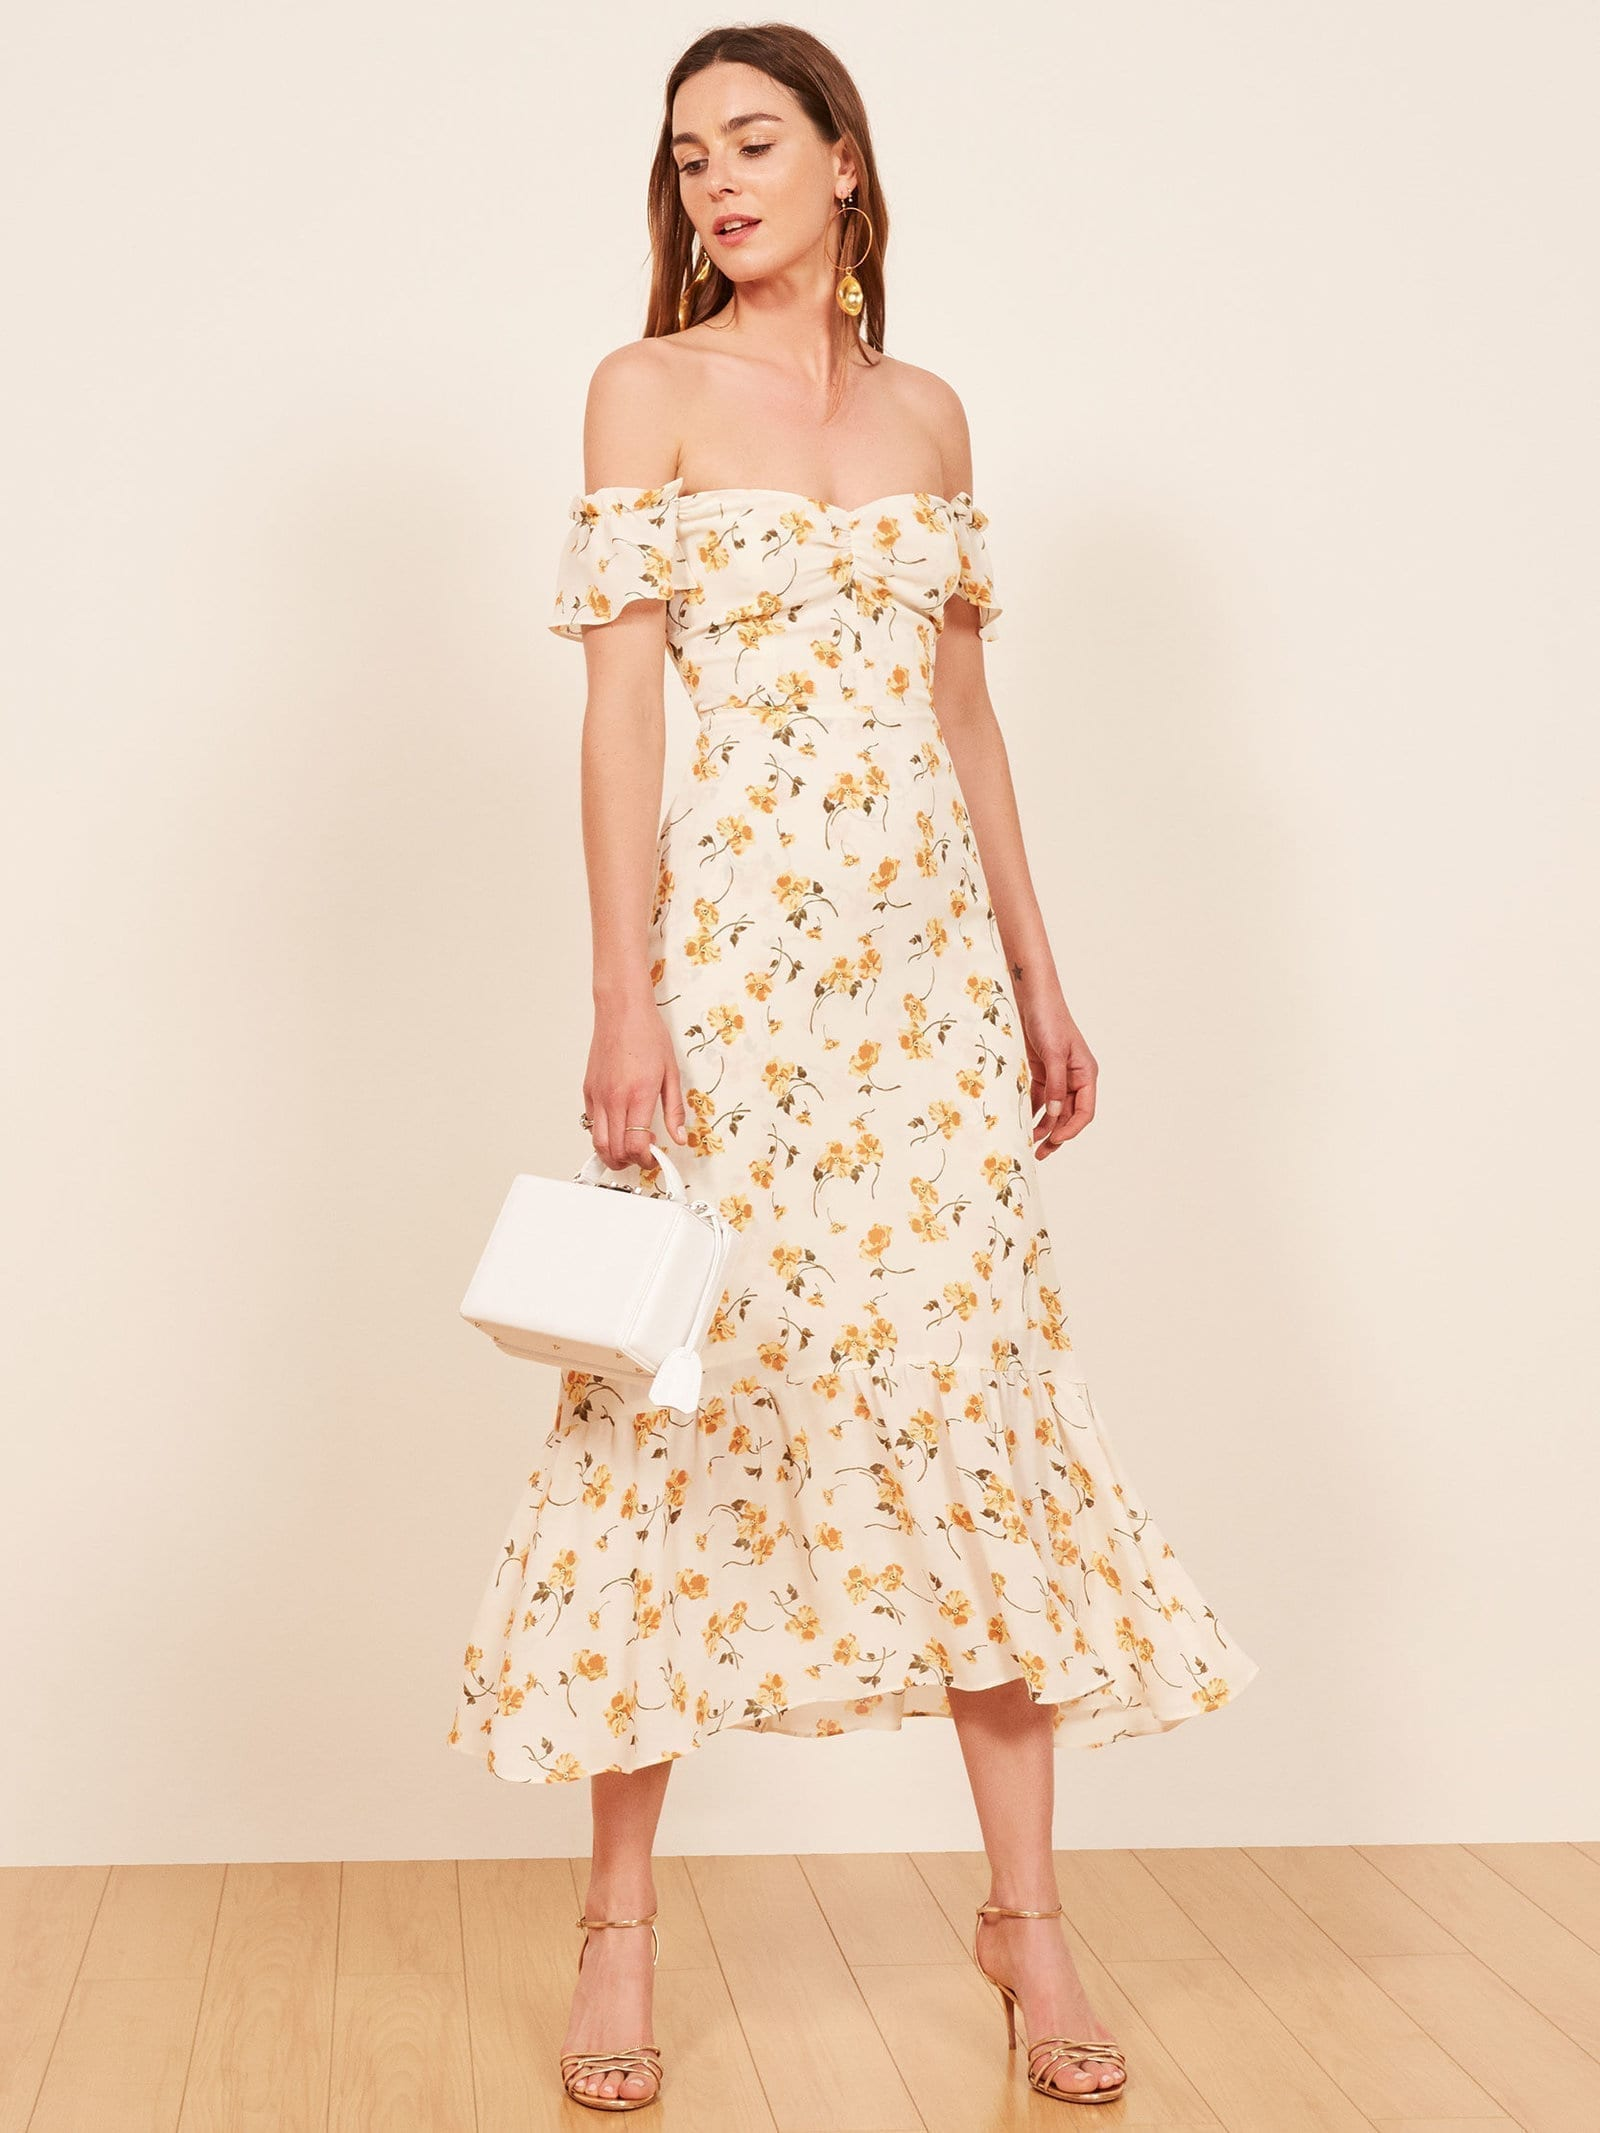 THEREFORMATION Butterfly Limonada Dress